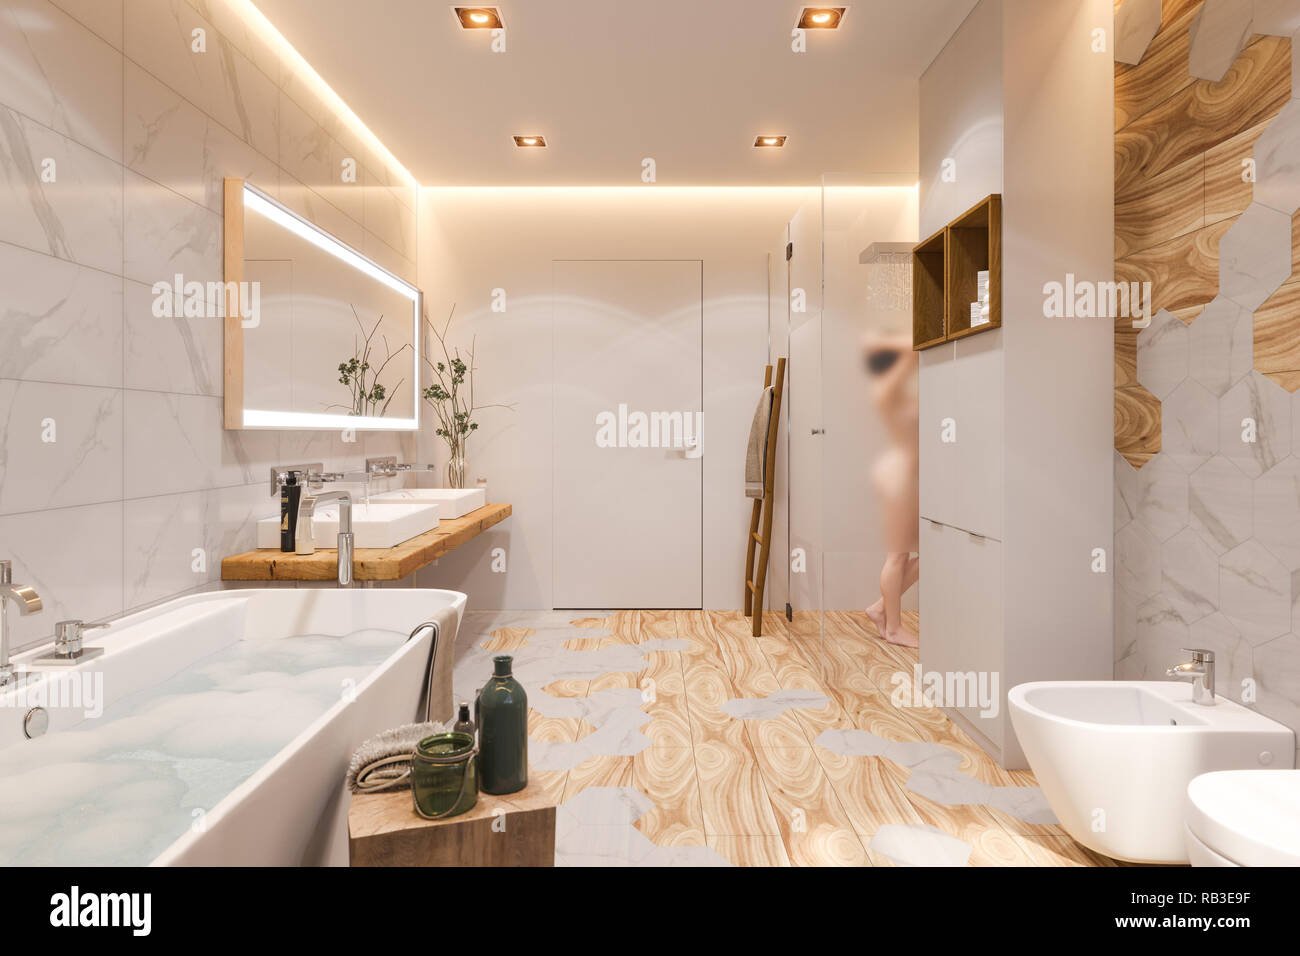 Interior Design Of A Bathroom 3d Illustration In A Scandinavian Style Stock Photo Alamy